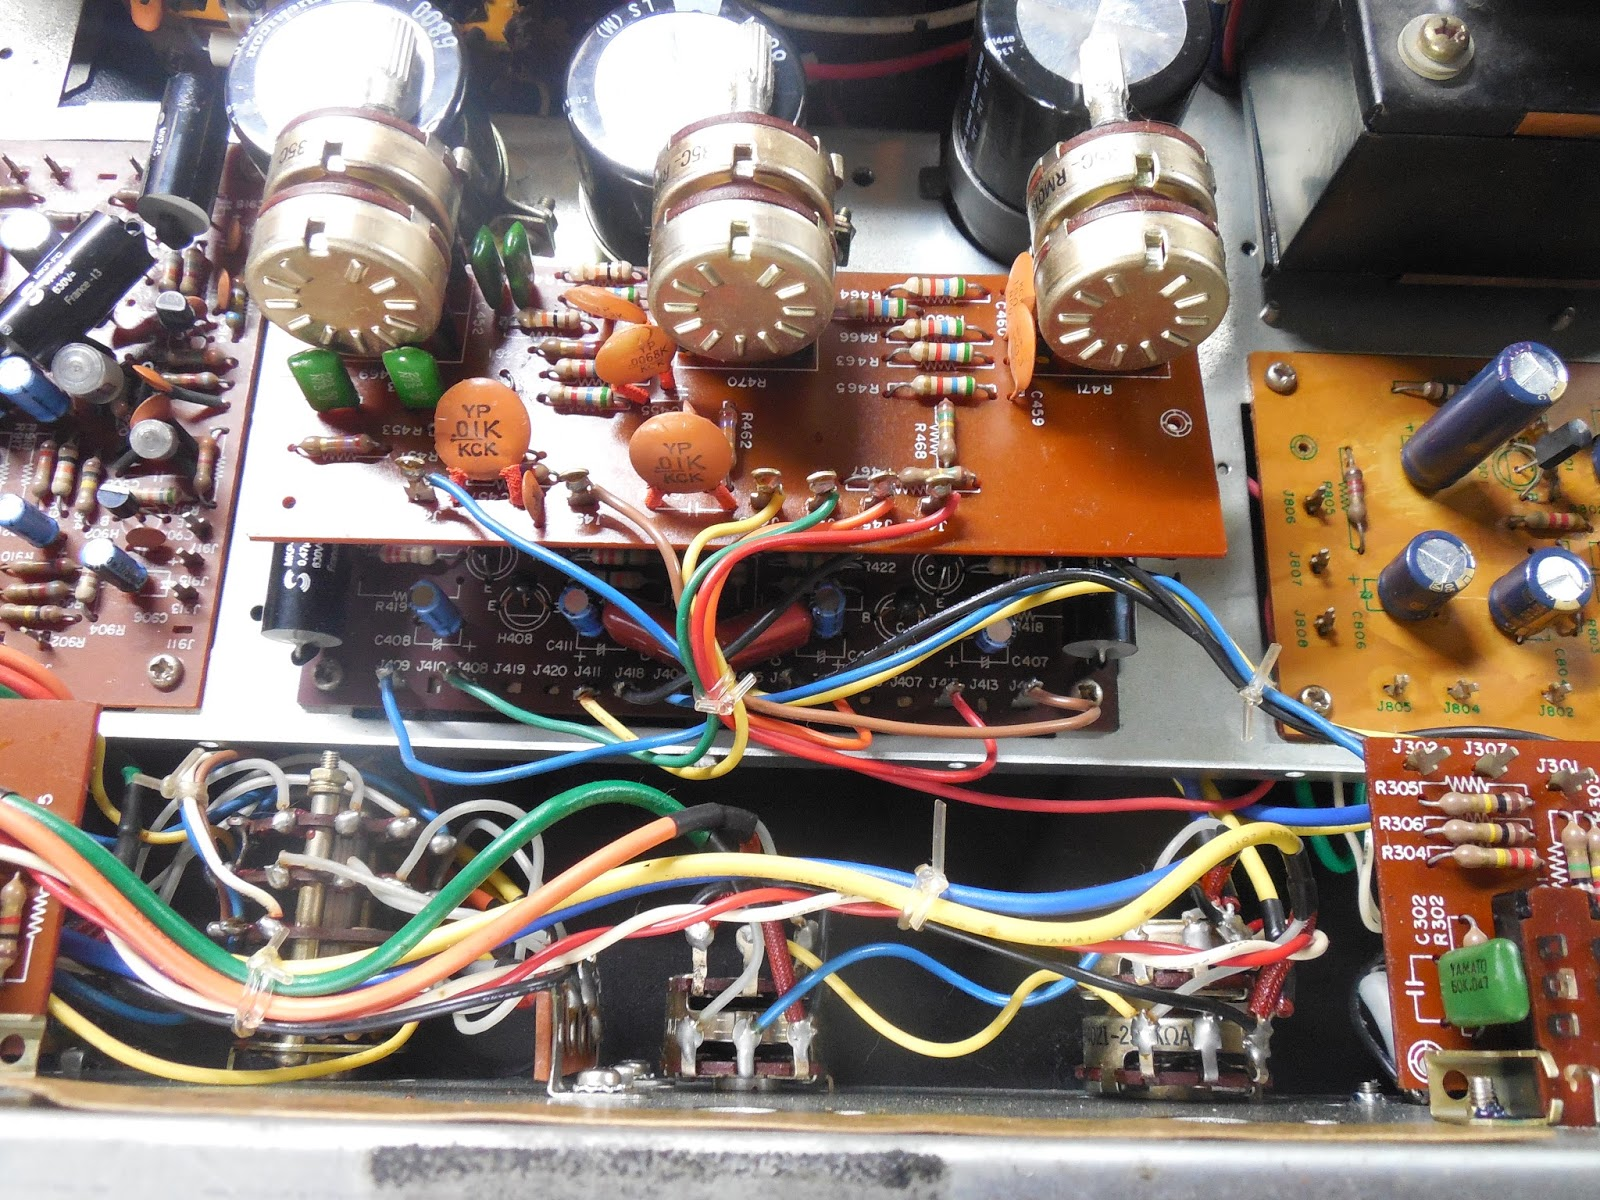 Vintage Hi Fi Audio Restorations June 2016 Tone Control Circuit Passive In Front Of This Assembly Is The Tied Network Which I Advise Pulling Now To Properly Clean And Volume Balance Selector Potentiometers